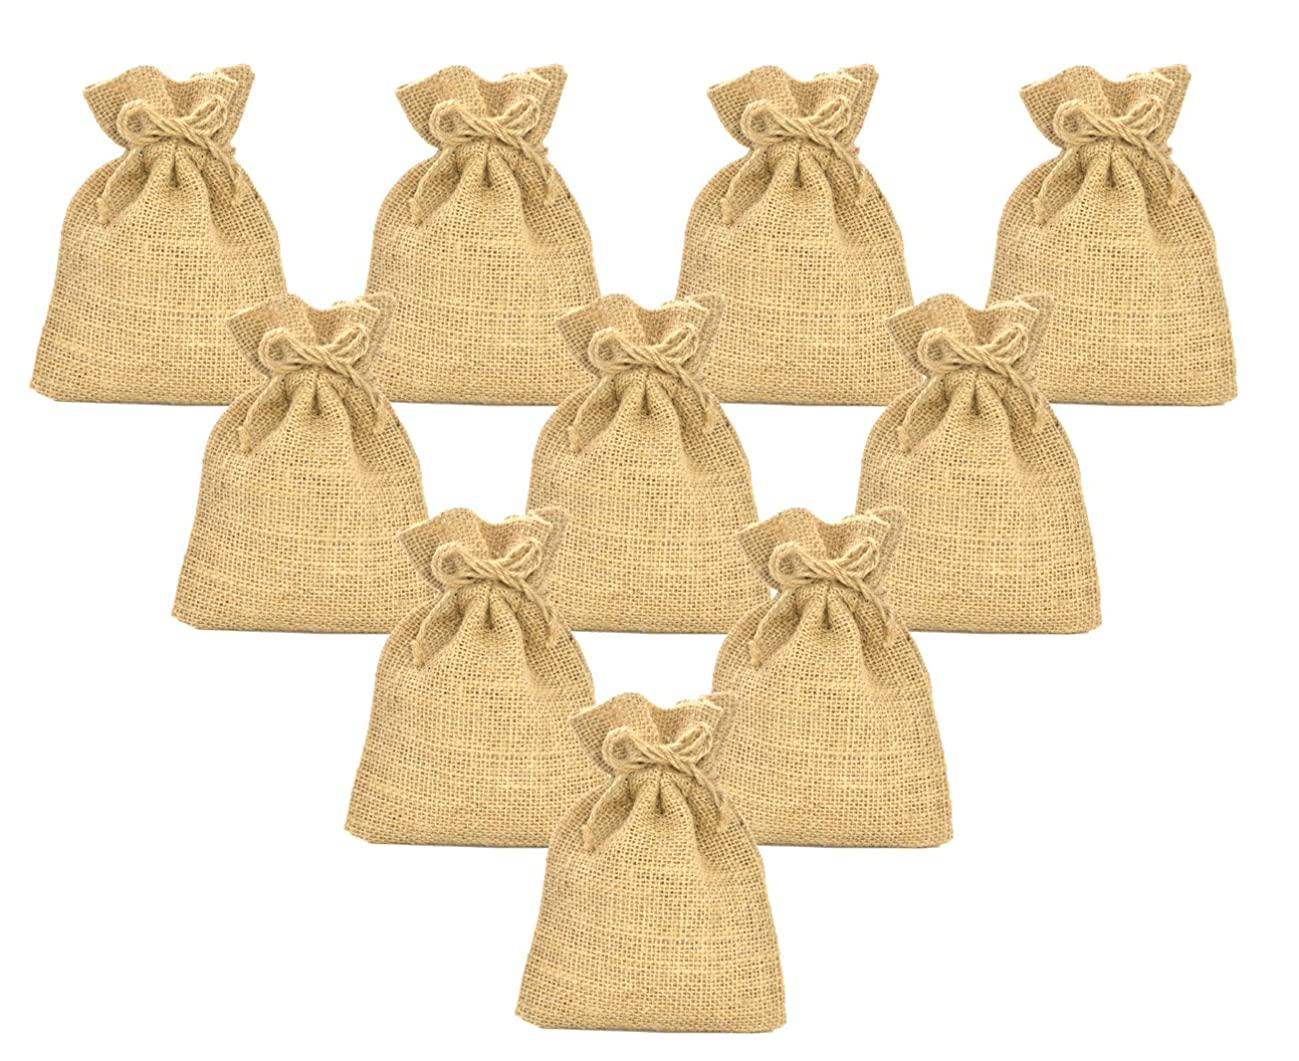 Firefly Craft Burlap Bags, 12 X 18 Inch, 10 Pack